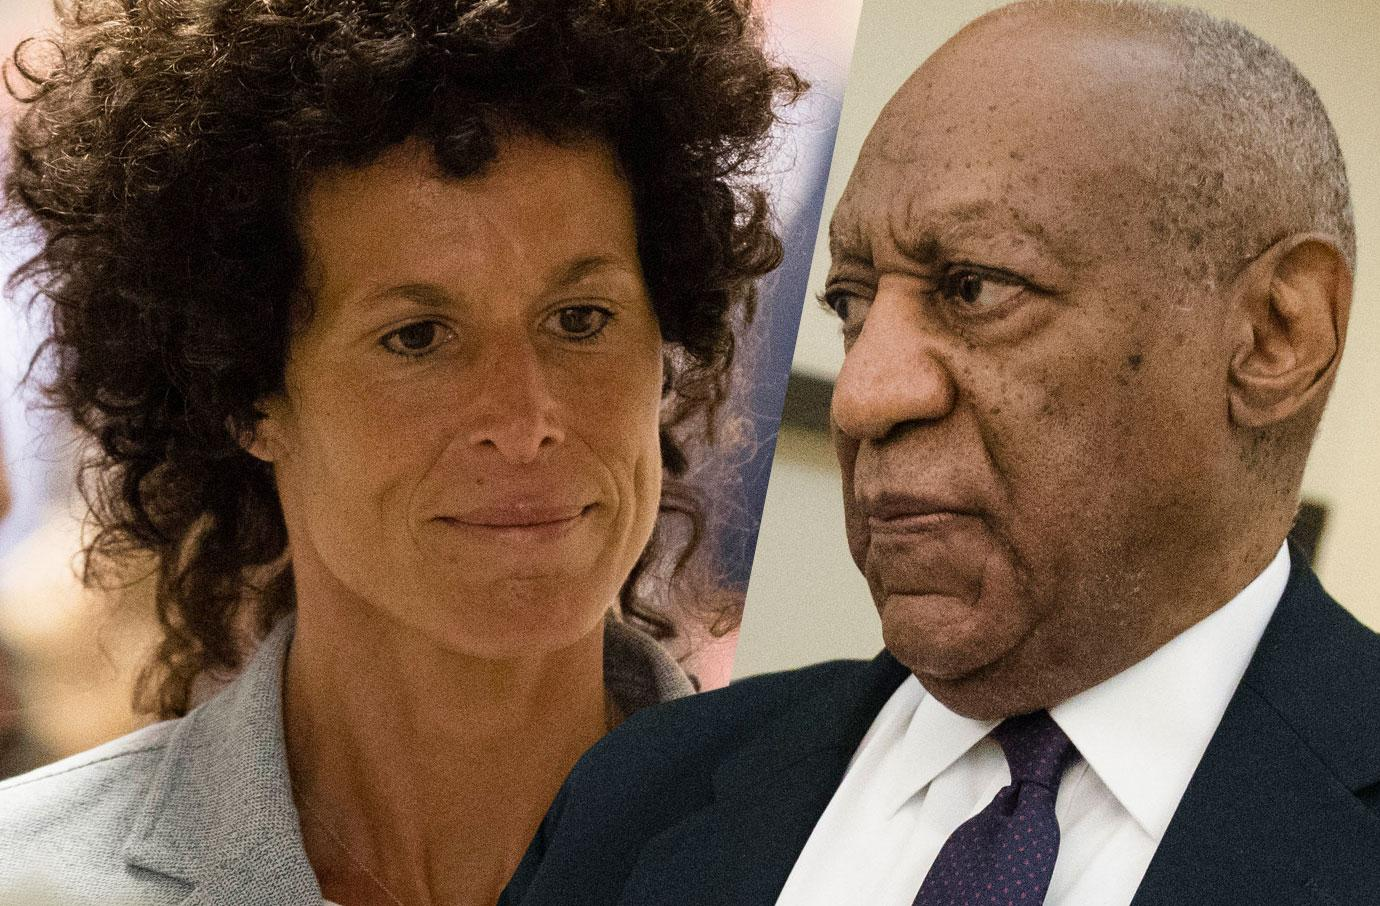 andrea constand moments before bill cosby alleged sexual assault